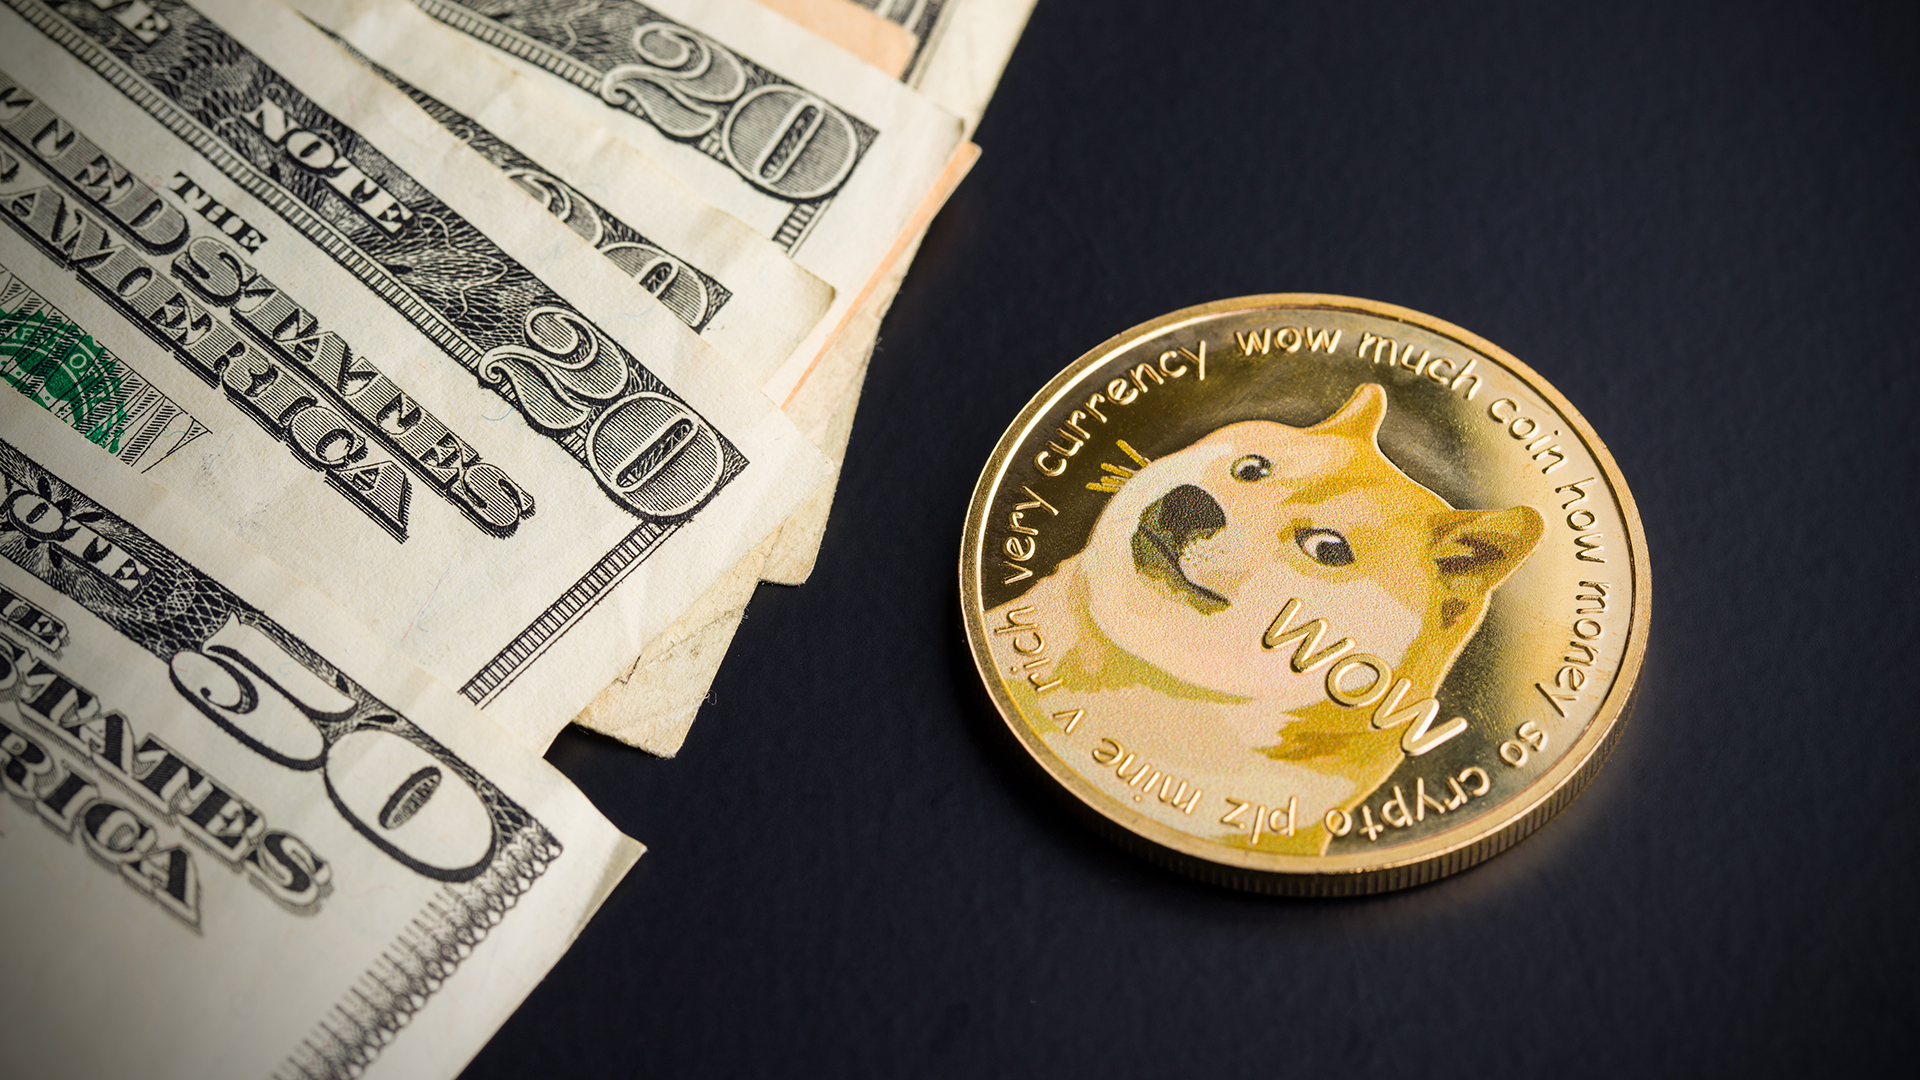 Best cryptocurrency listed — Dogecoin